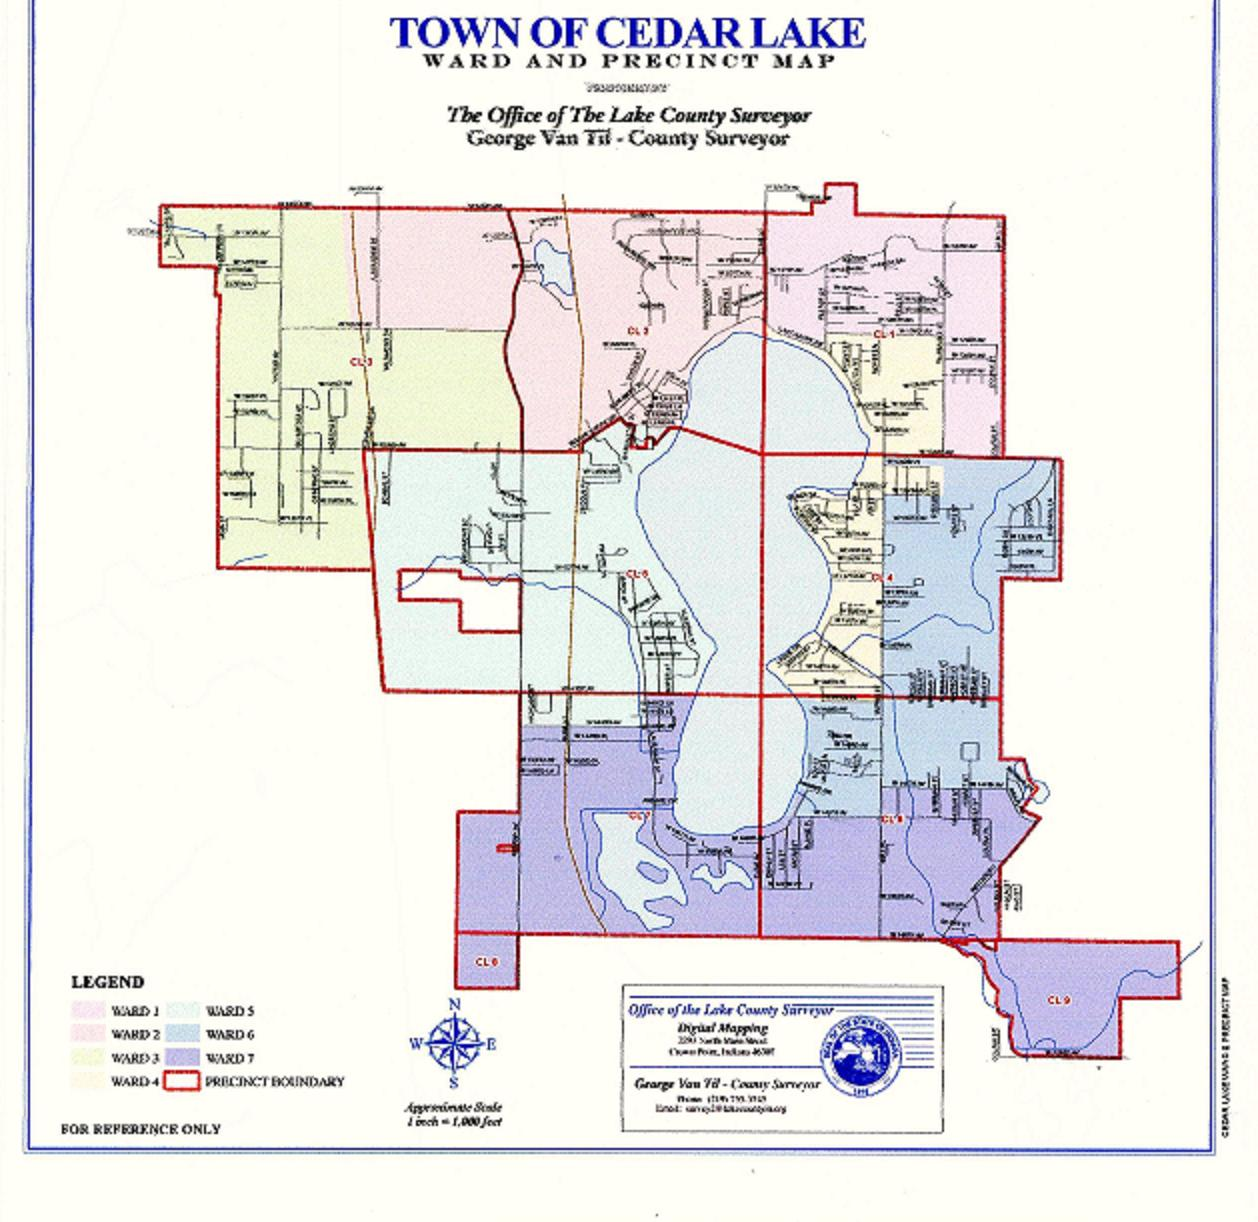 cedar lake hanover republicans of lake county primary voting cedar lake precinct map and voting locations